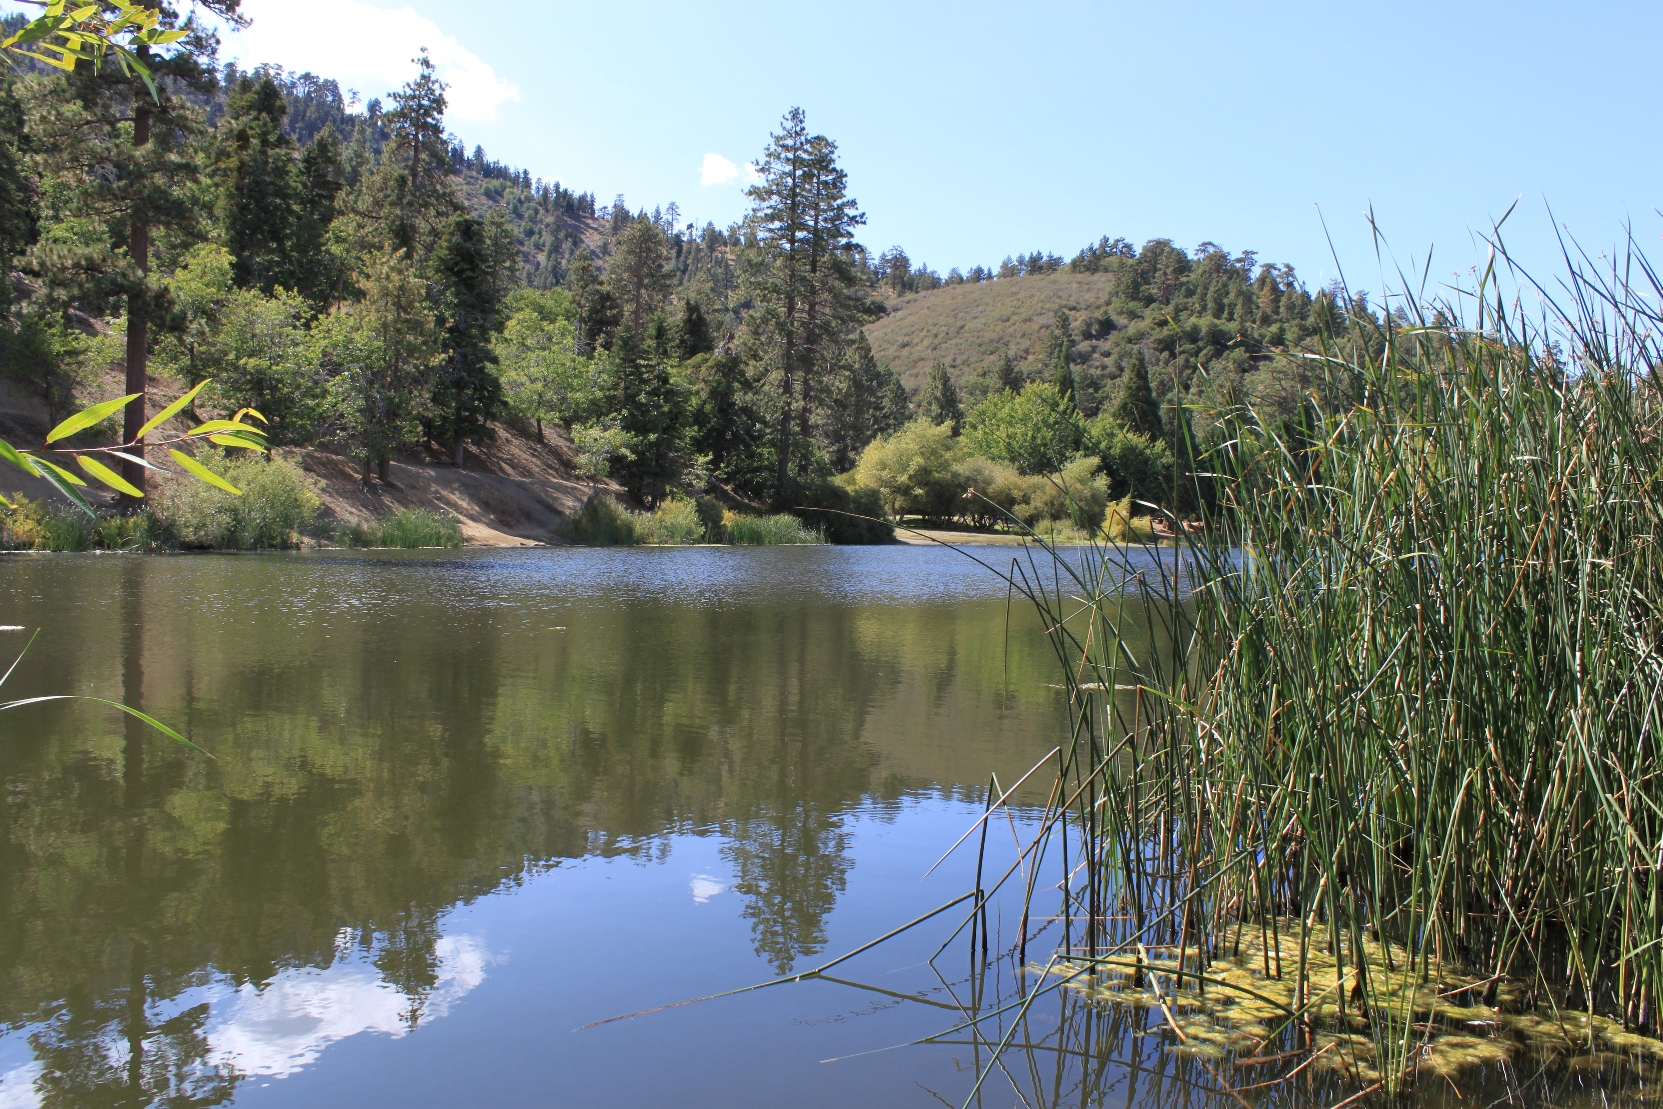 Features of the san andreas fault near wrightwood maven for Lake fishing near los angeles